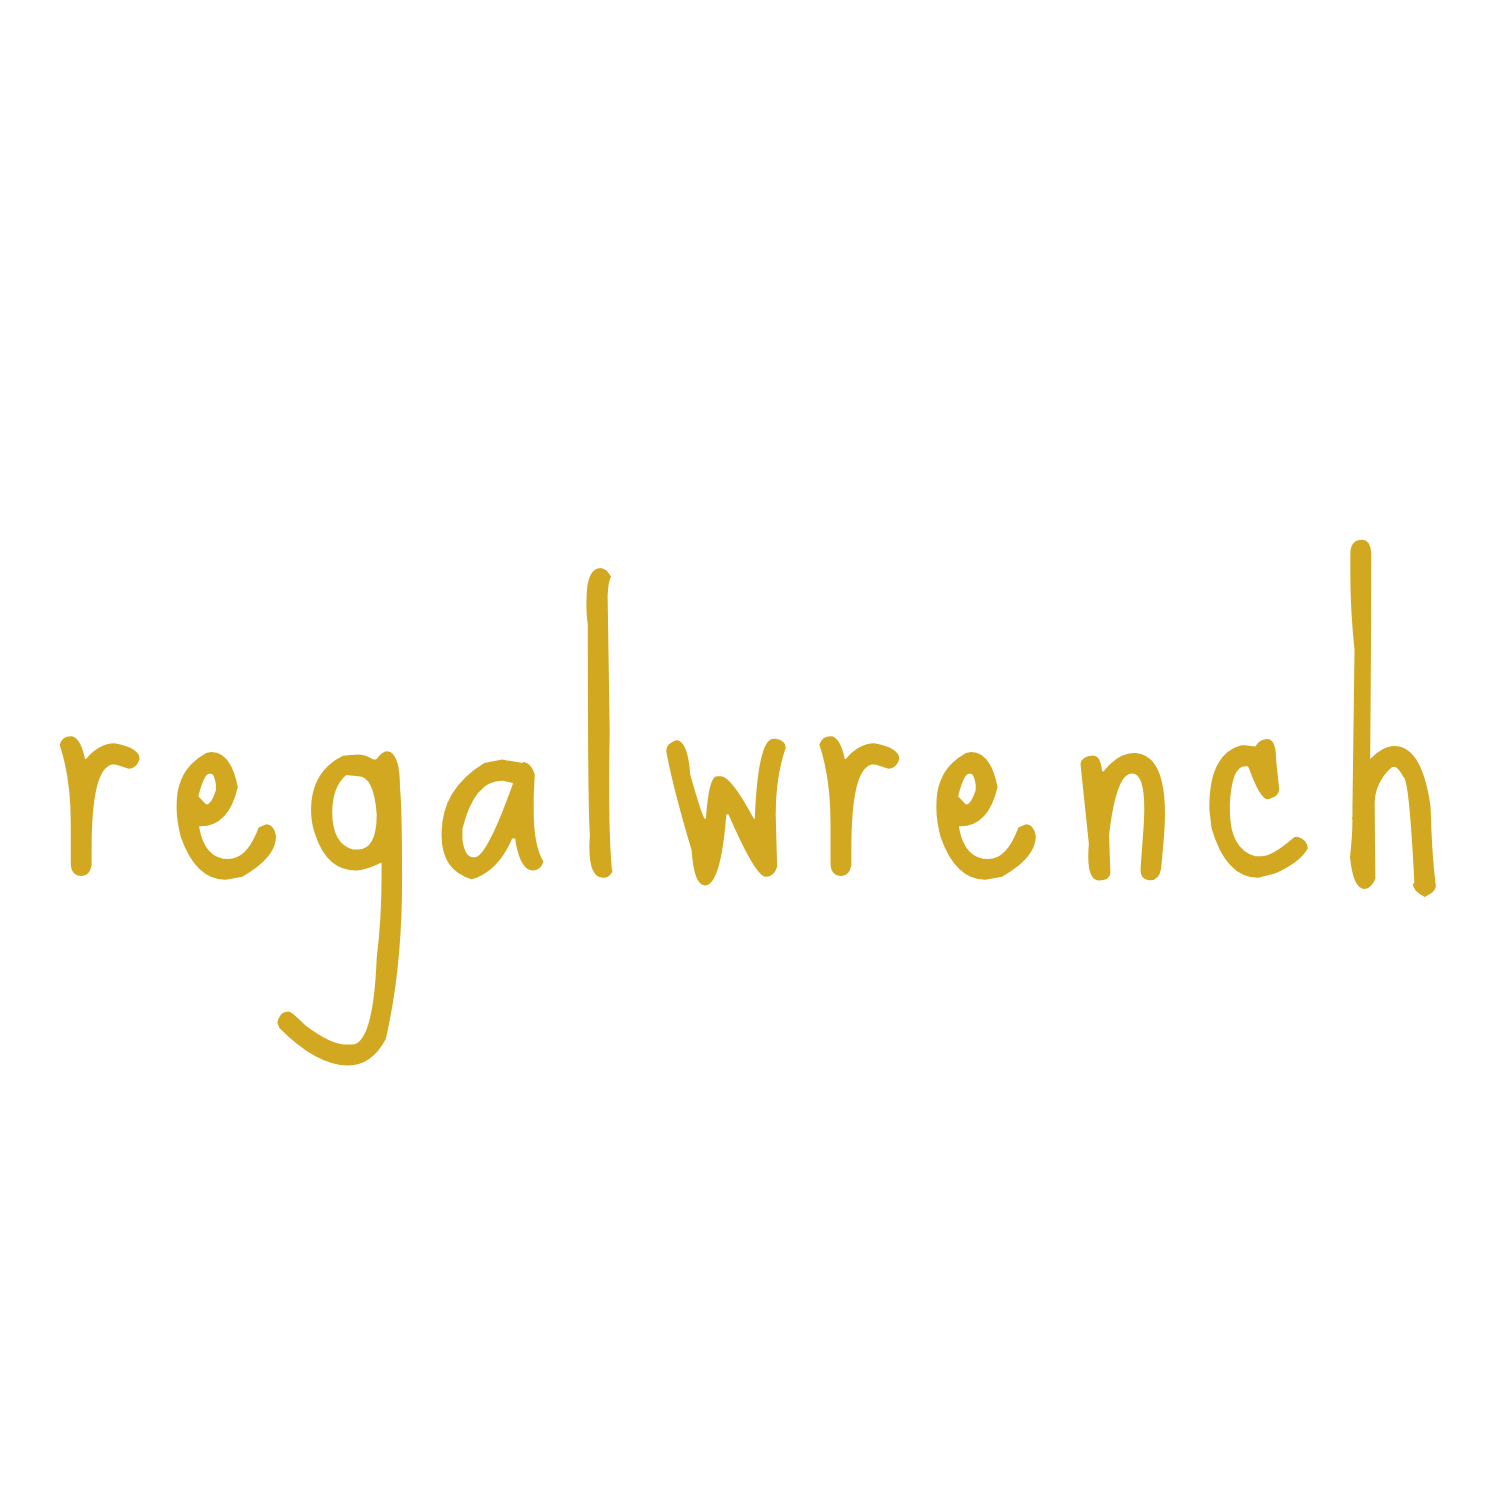 Regal Wrench